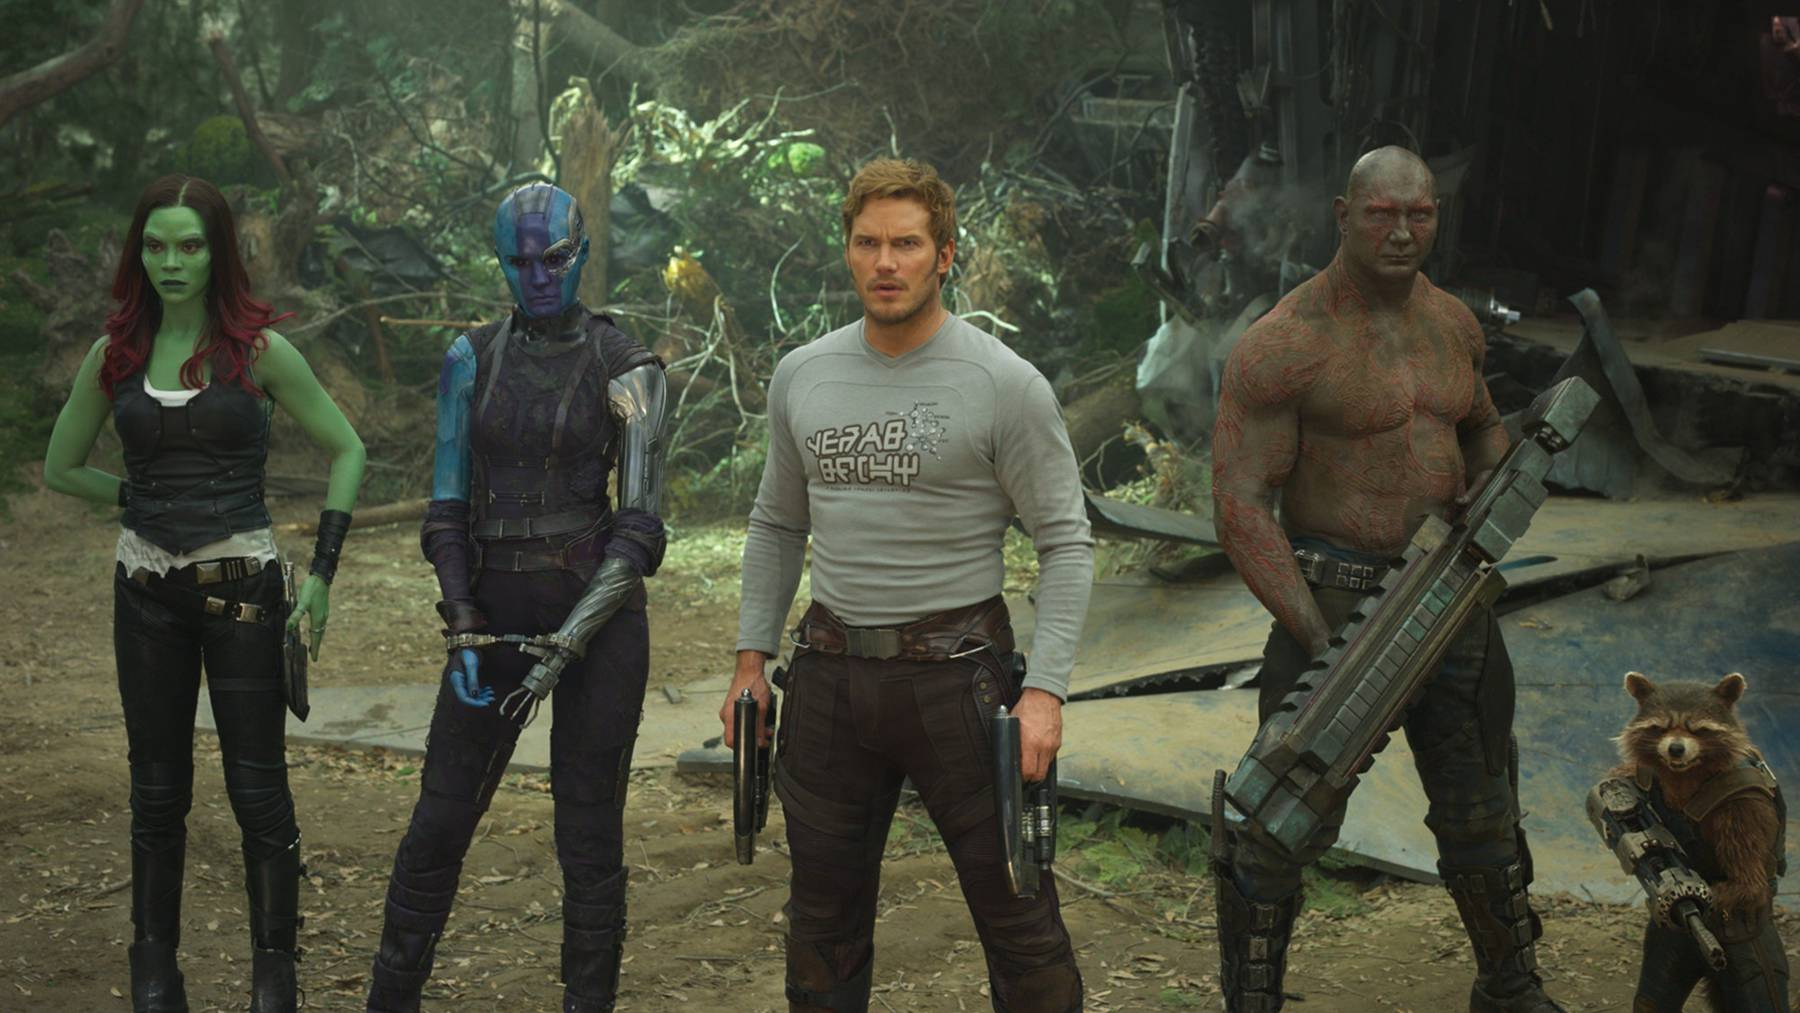 Kinotipp: Guardians of the Galaxy Vol. 2